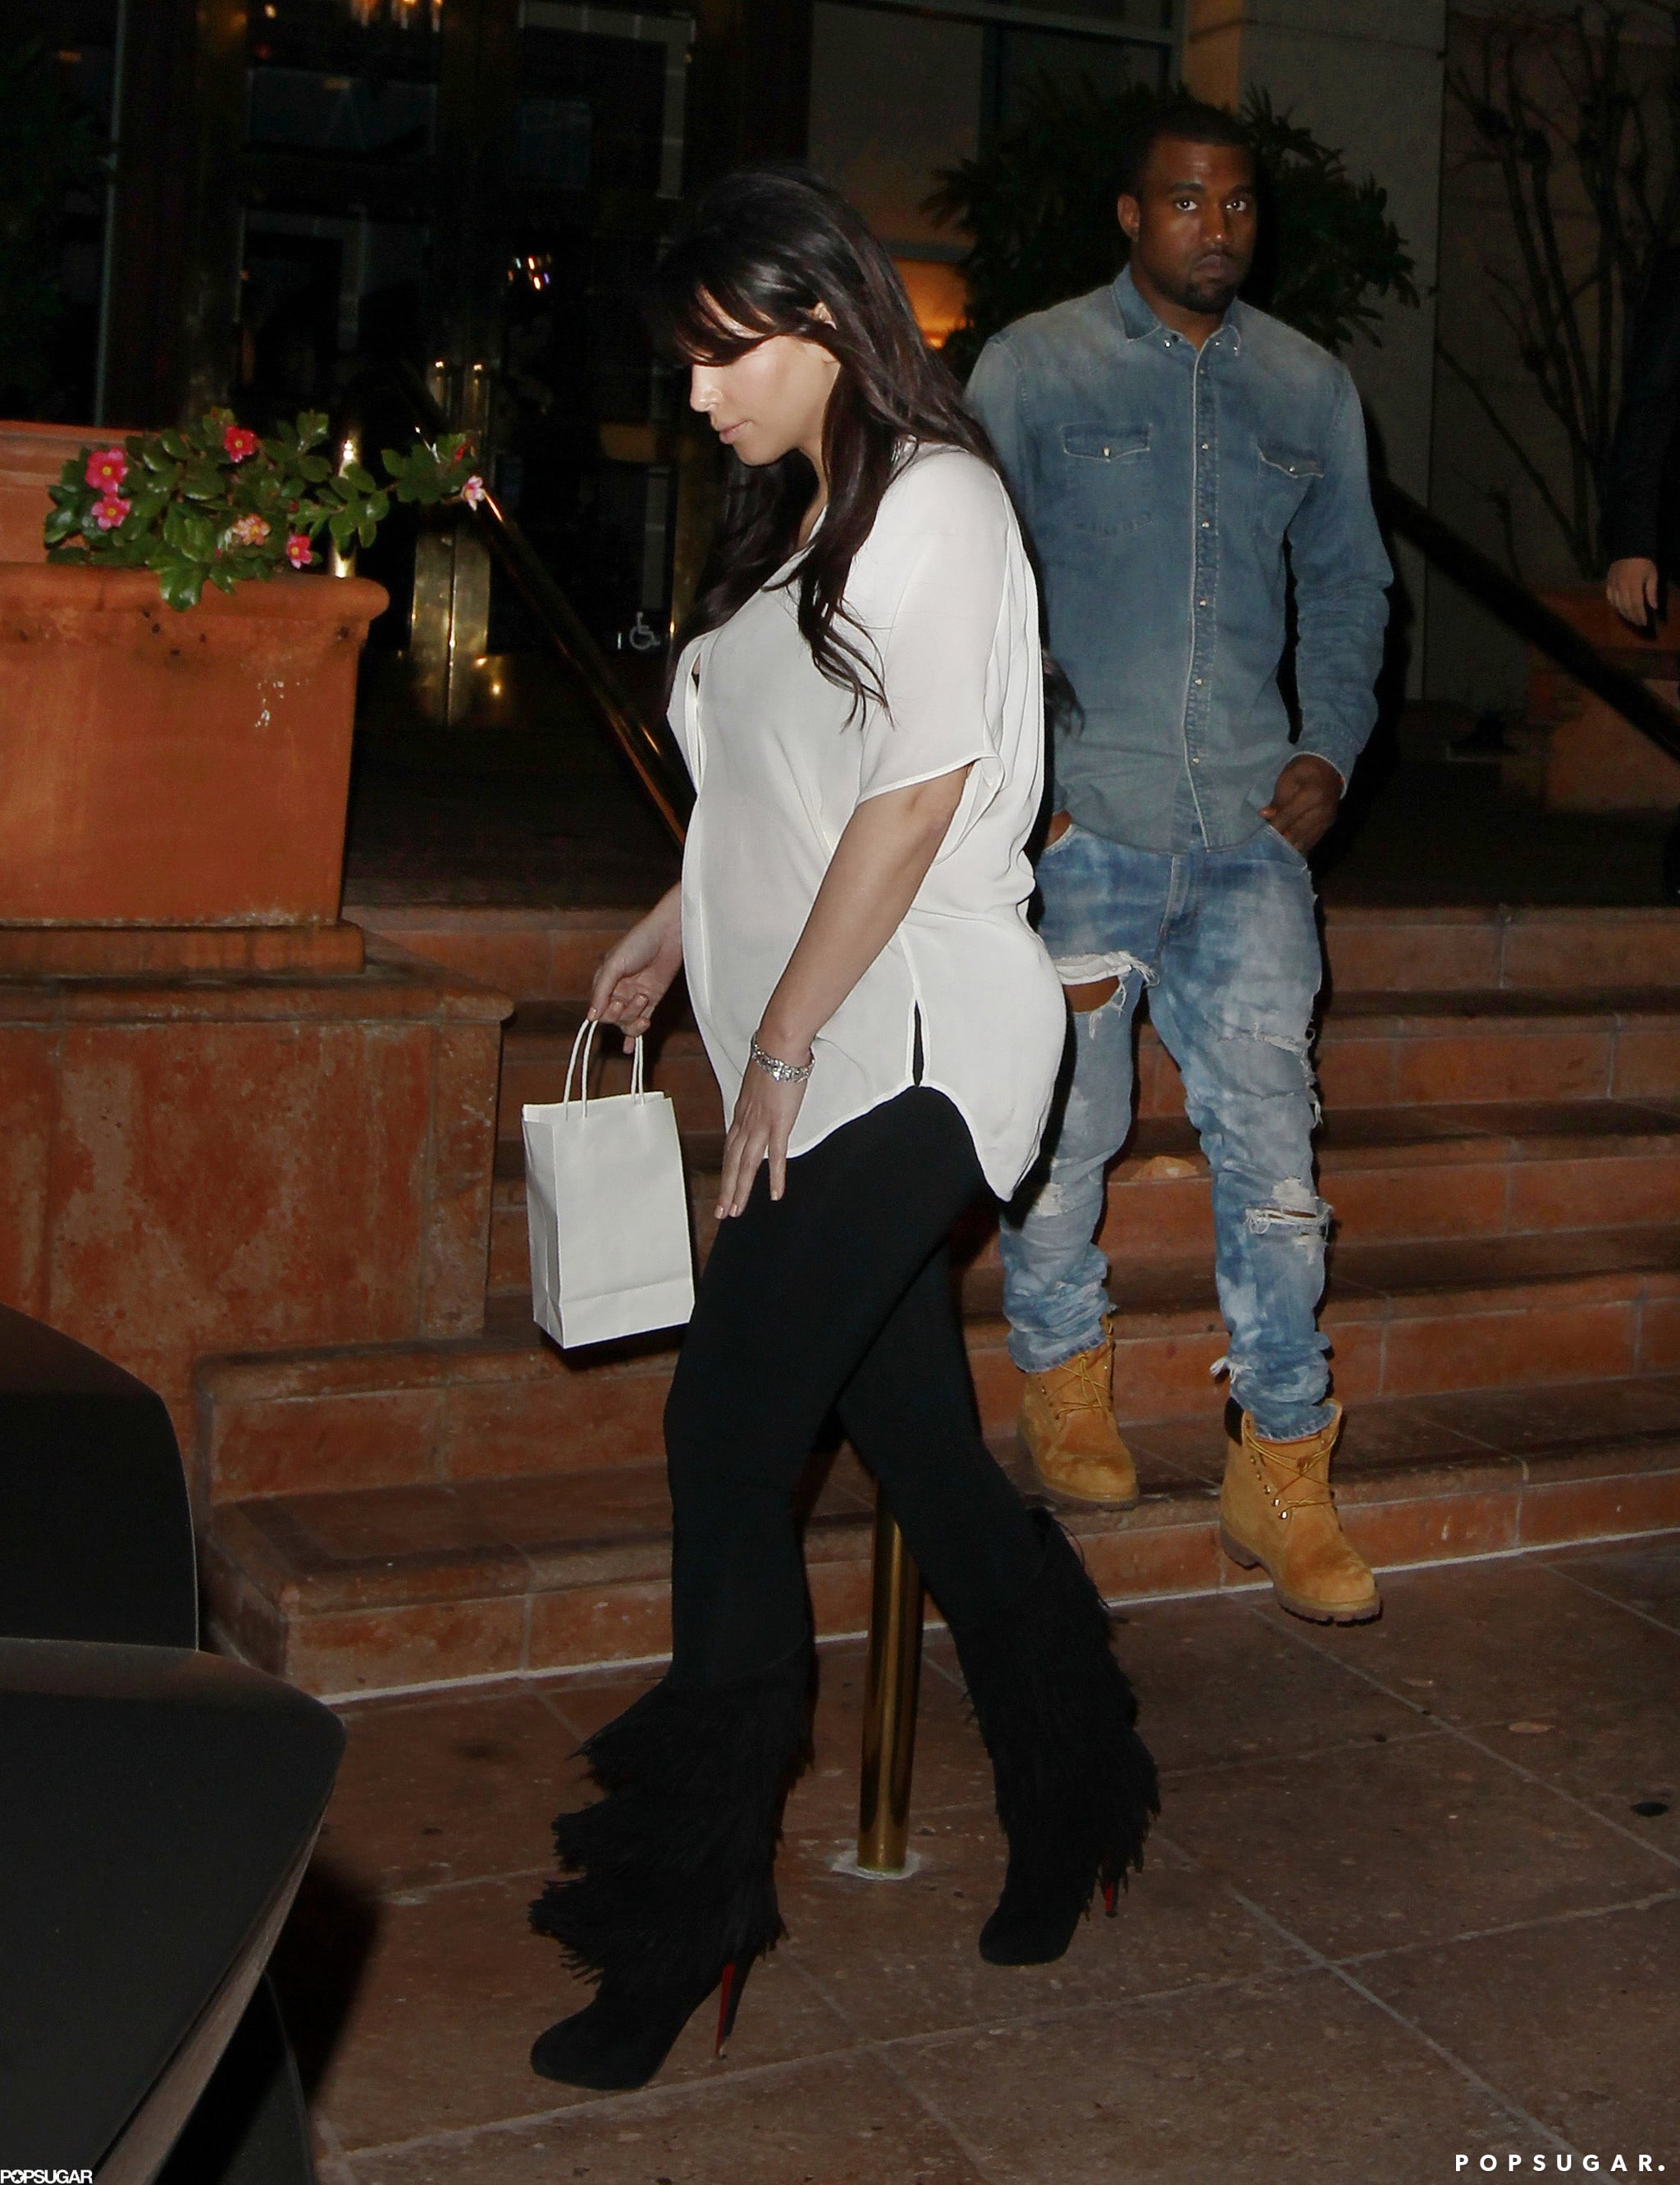 Kim Kardashian and Kanye West celebrated Valentine's Day with a dinner date in LA.